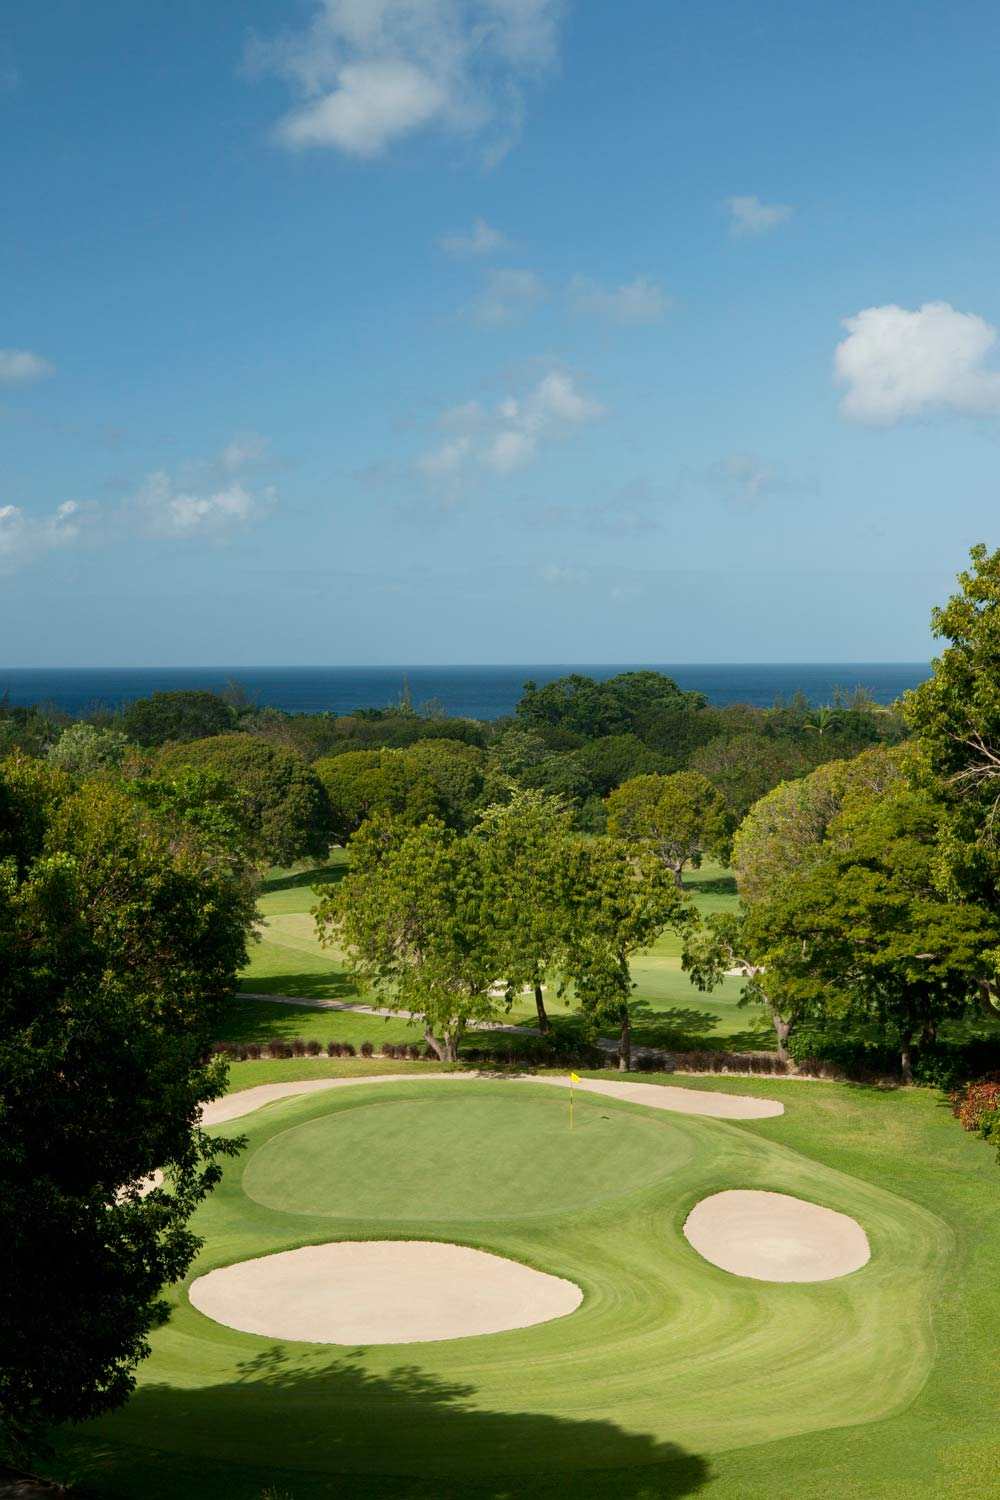 Golf Course at Sandy Lane Hotel, Barbados